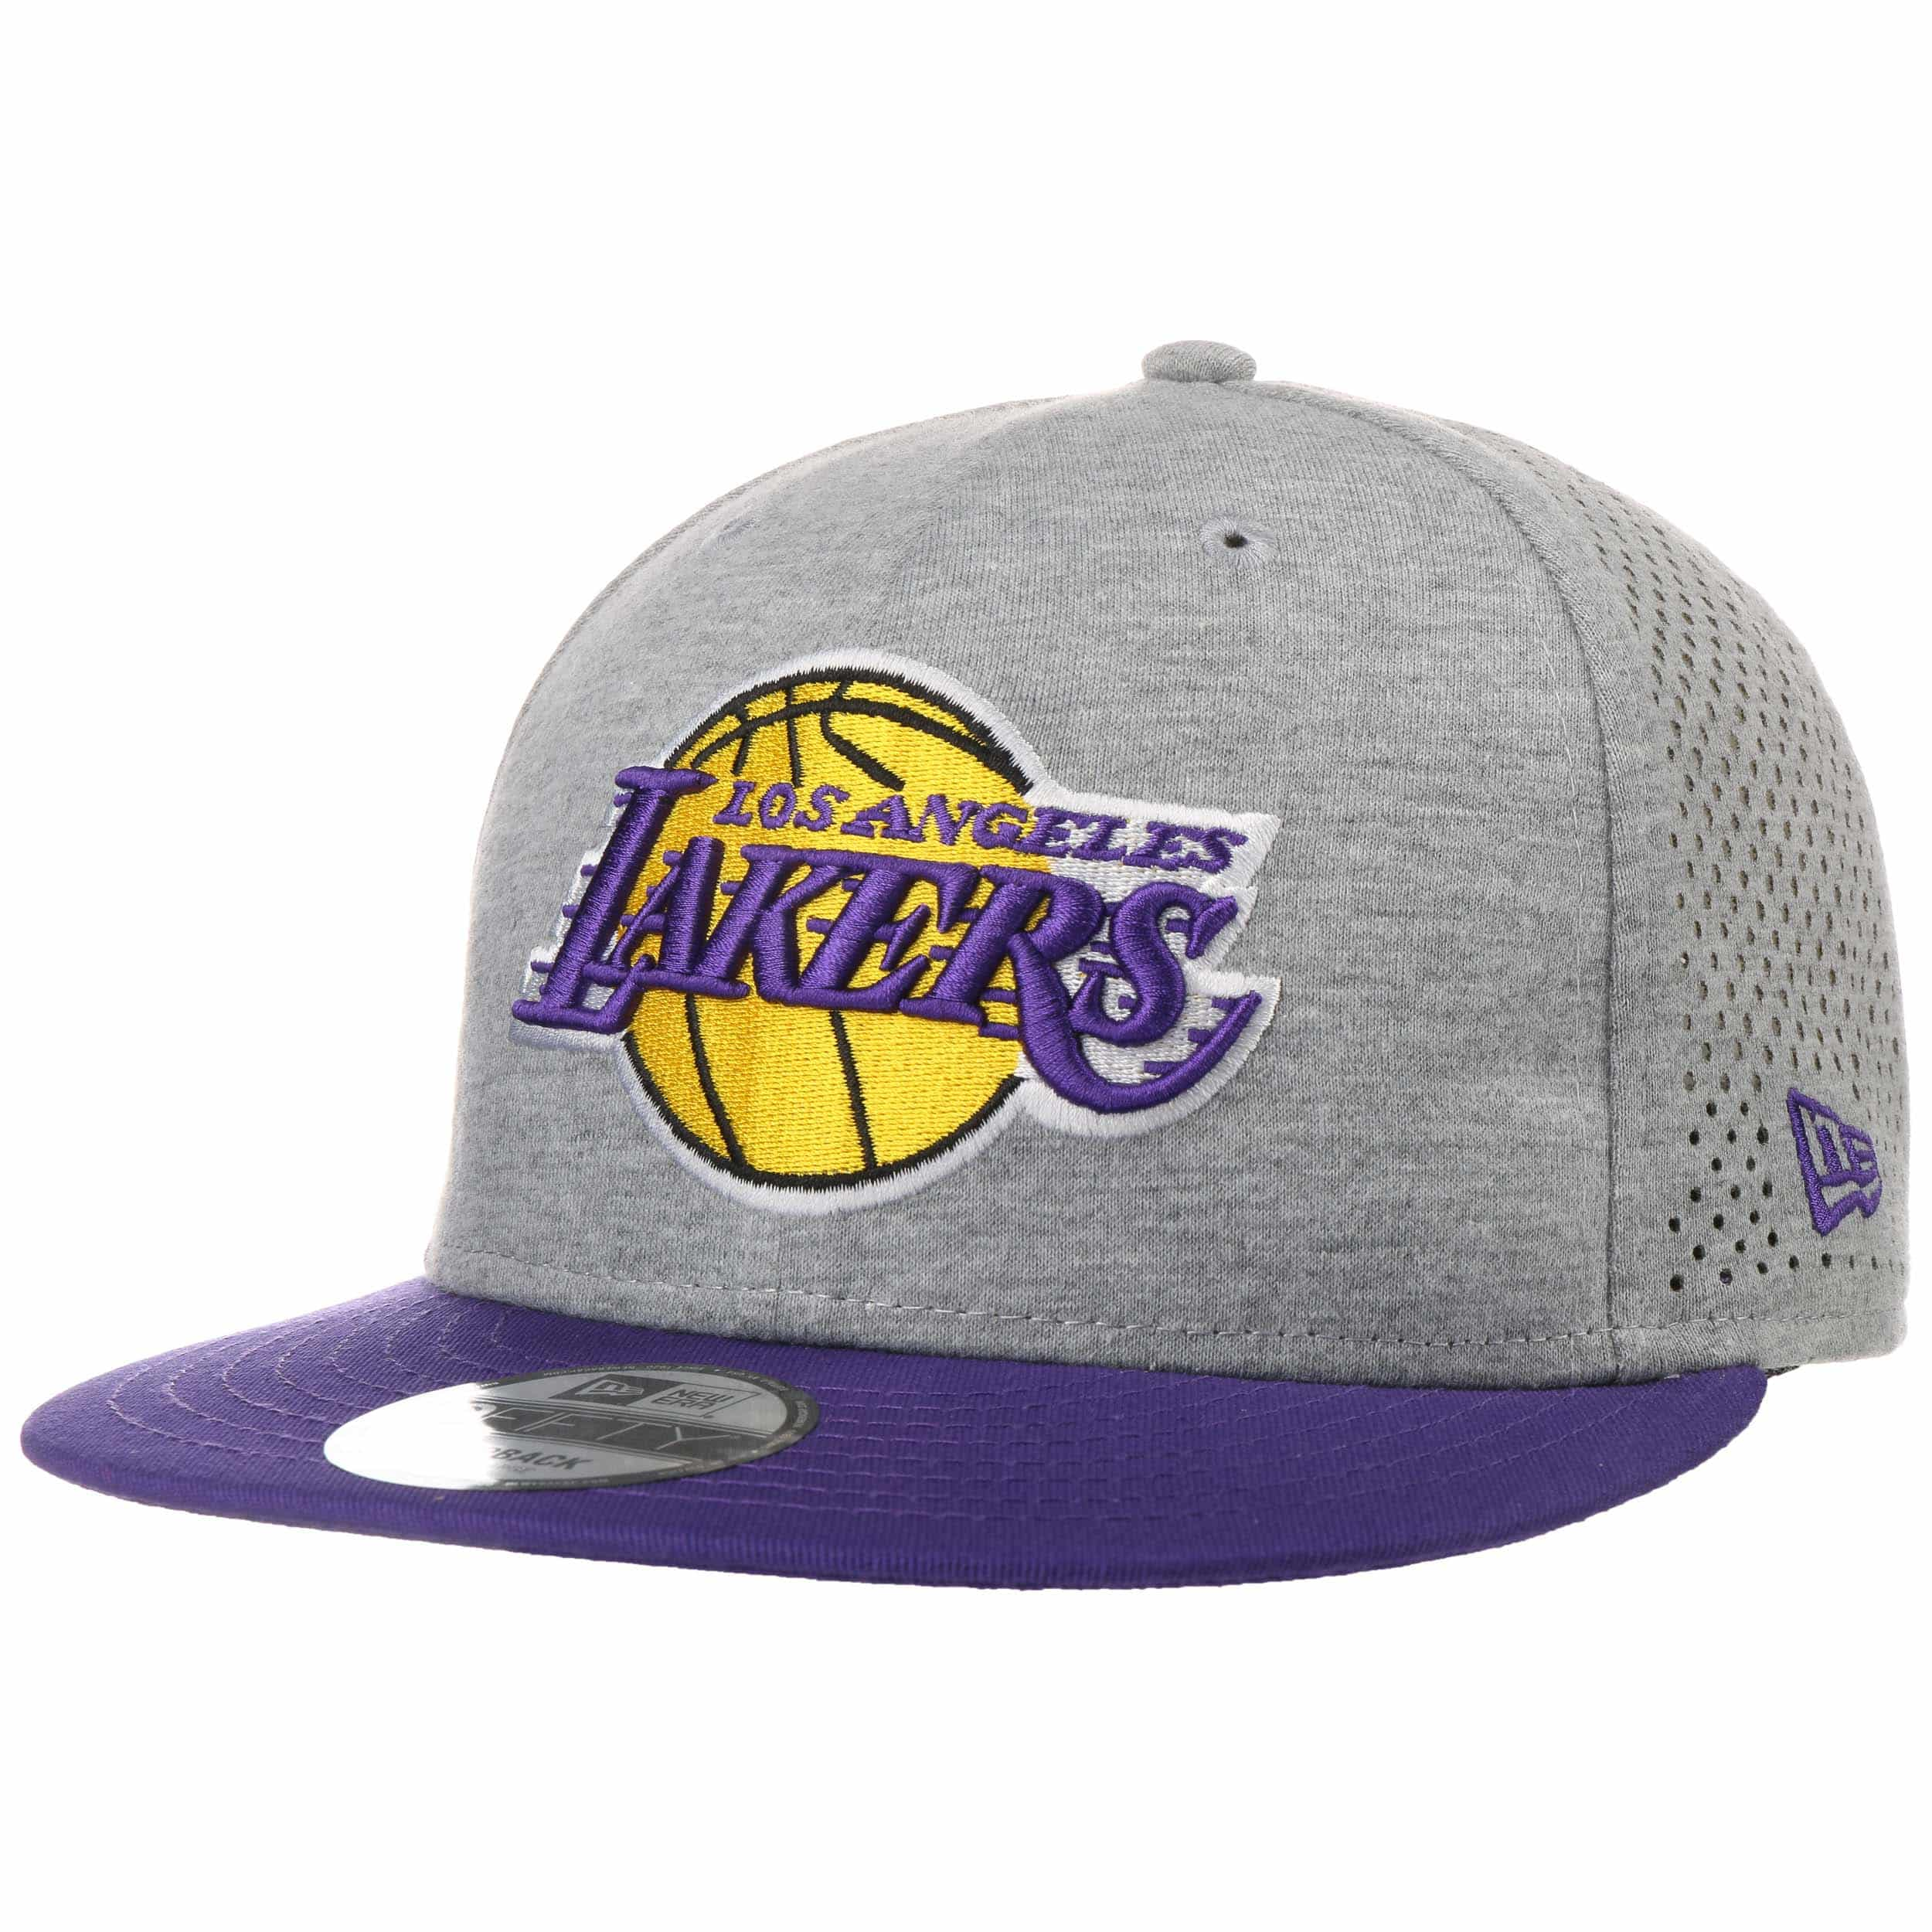 reputable site 0ab52 5f07a 9Fifty Shadow Tech Lakers Cap by New Era - light grey 1